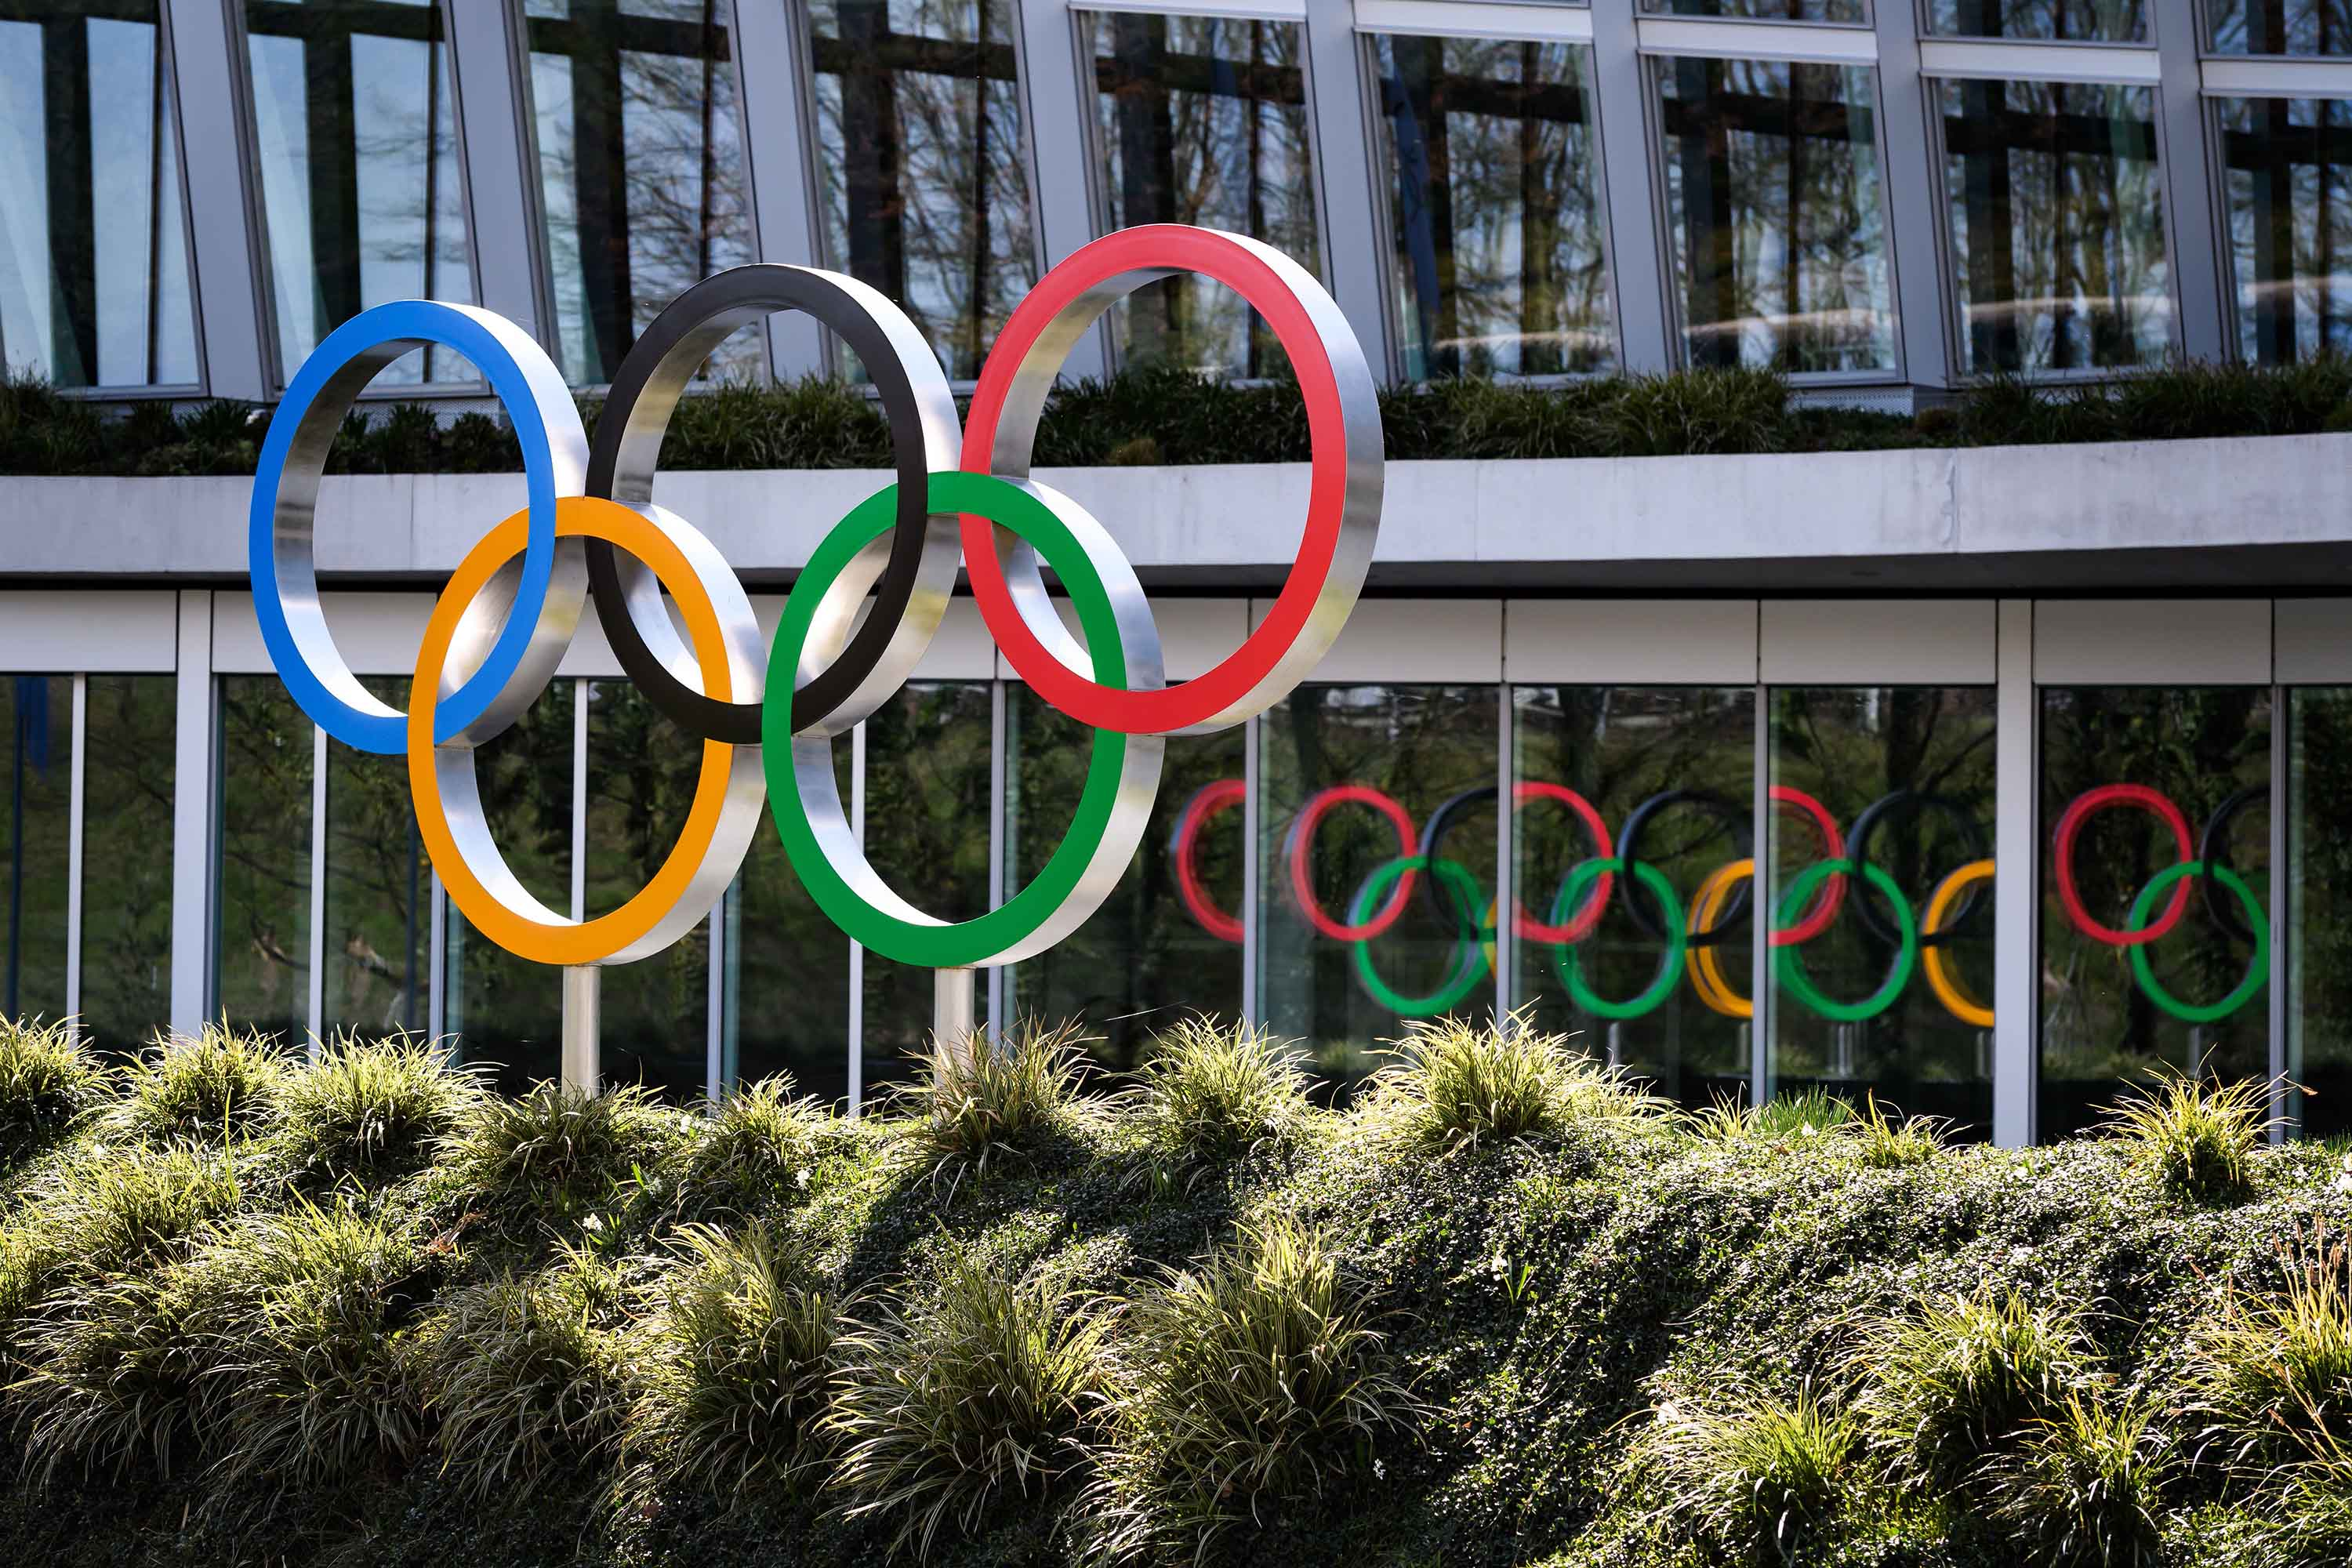 Olympic Rings are seen next to the headquarters of the International Olympic Committee (IOC) in Lausanne, Switzerland on March 17.